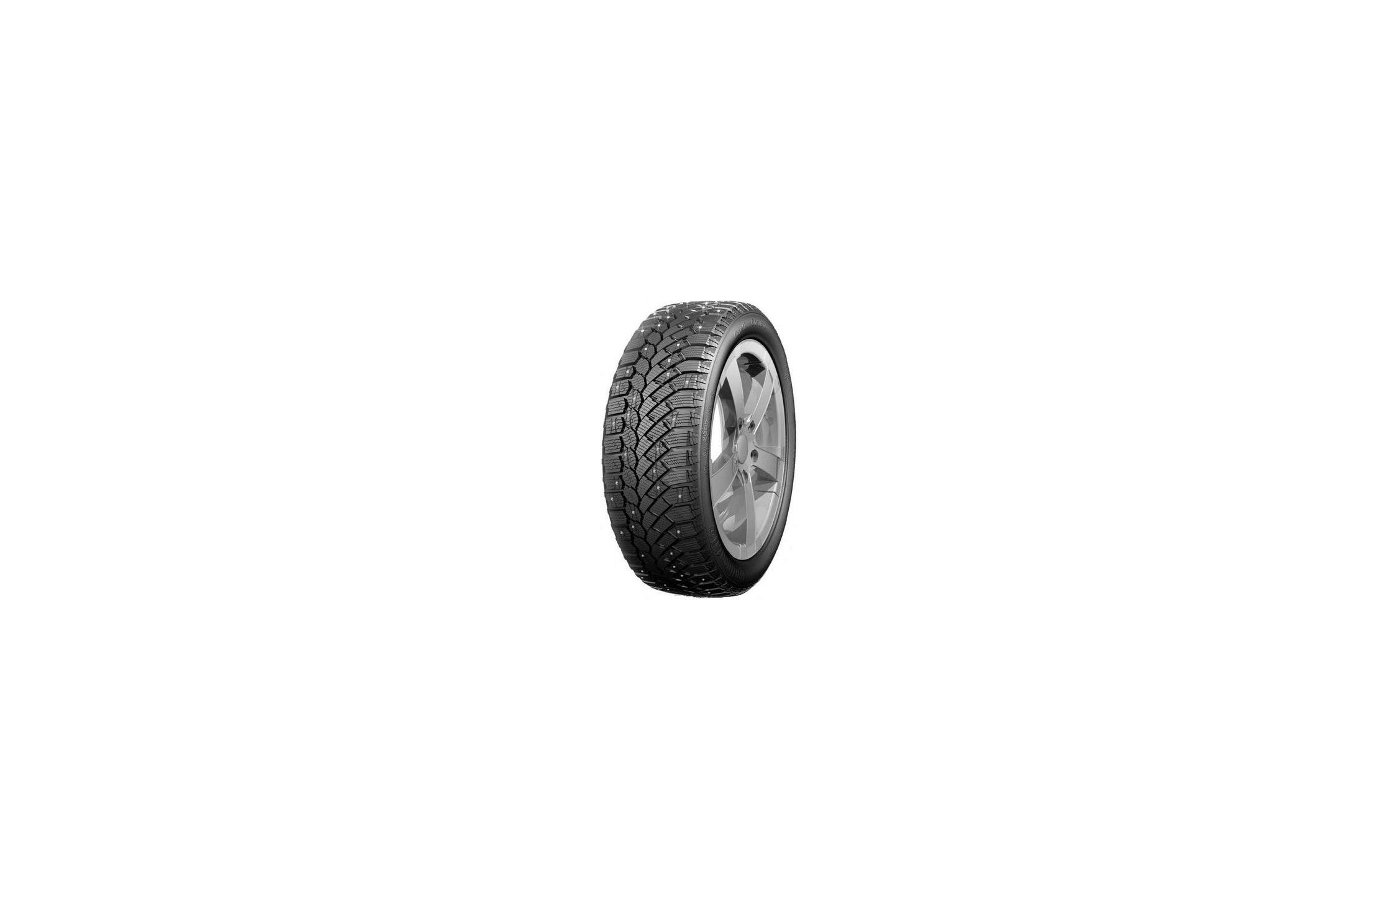 Шина Continental ContiIceContact2 FR 235/45 R17 TL 97T XL шип